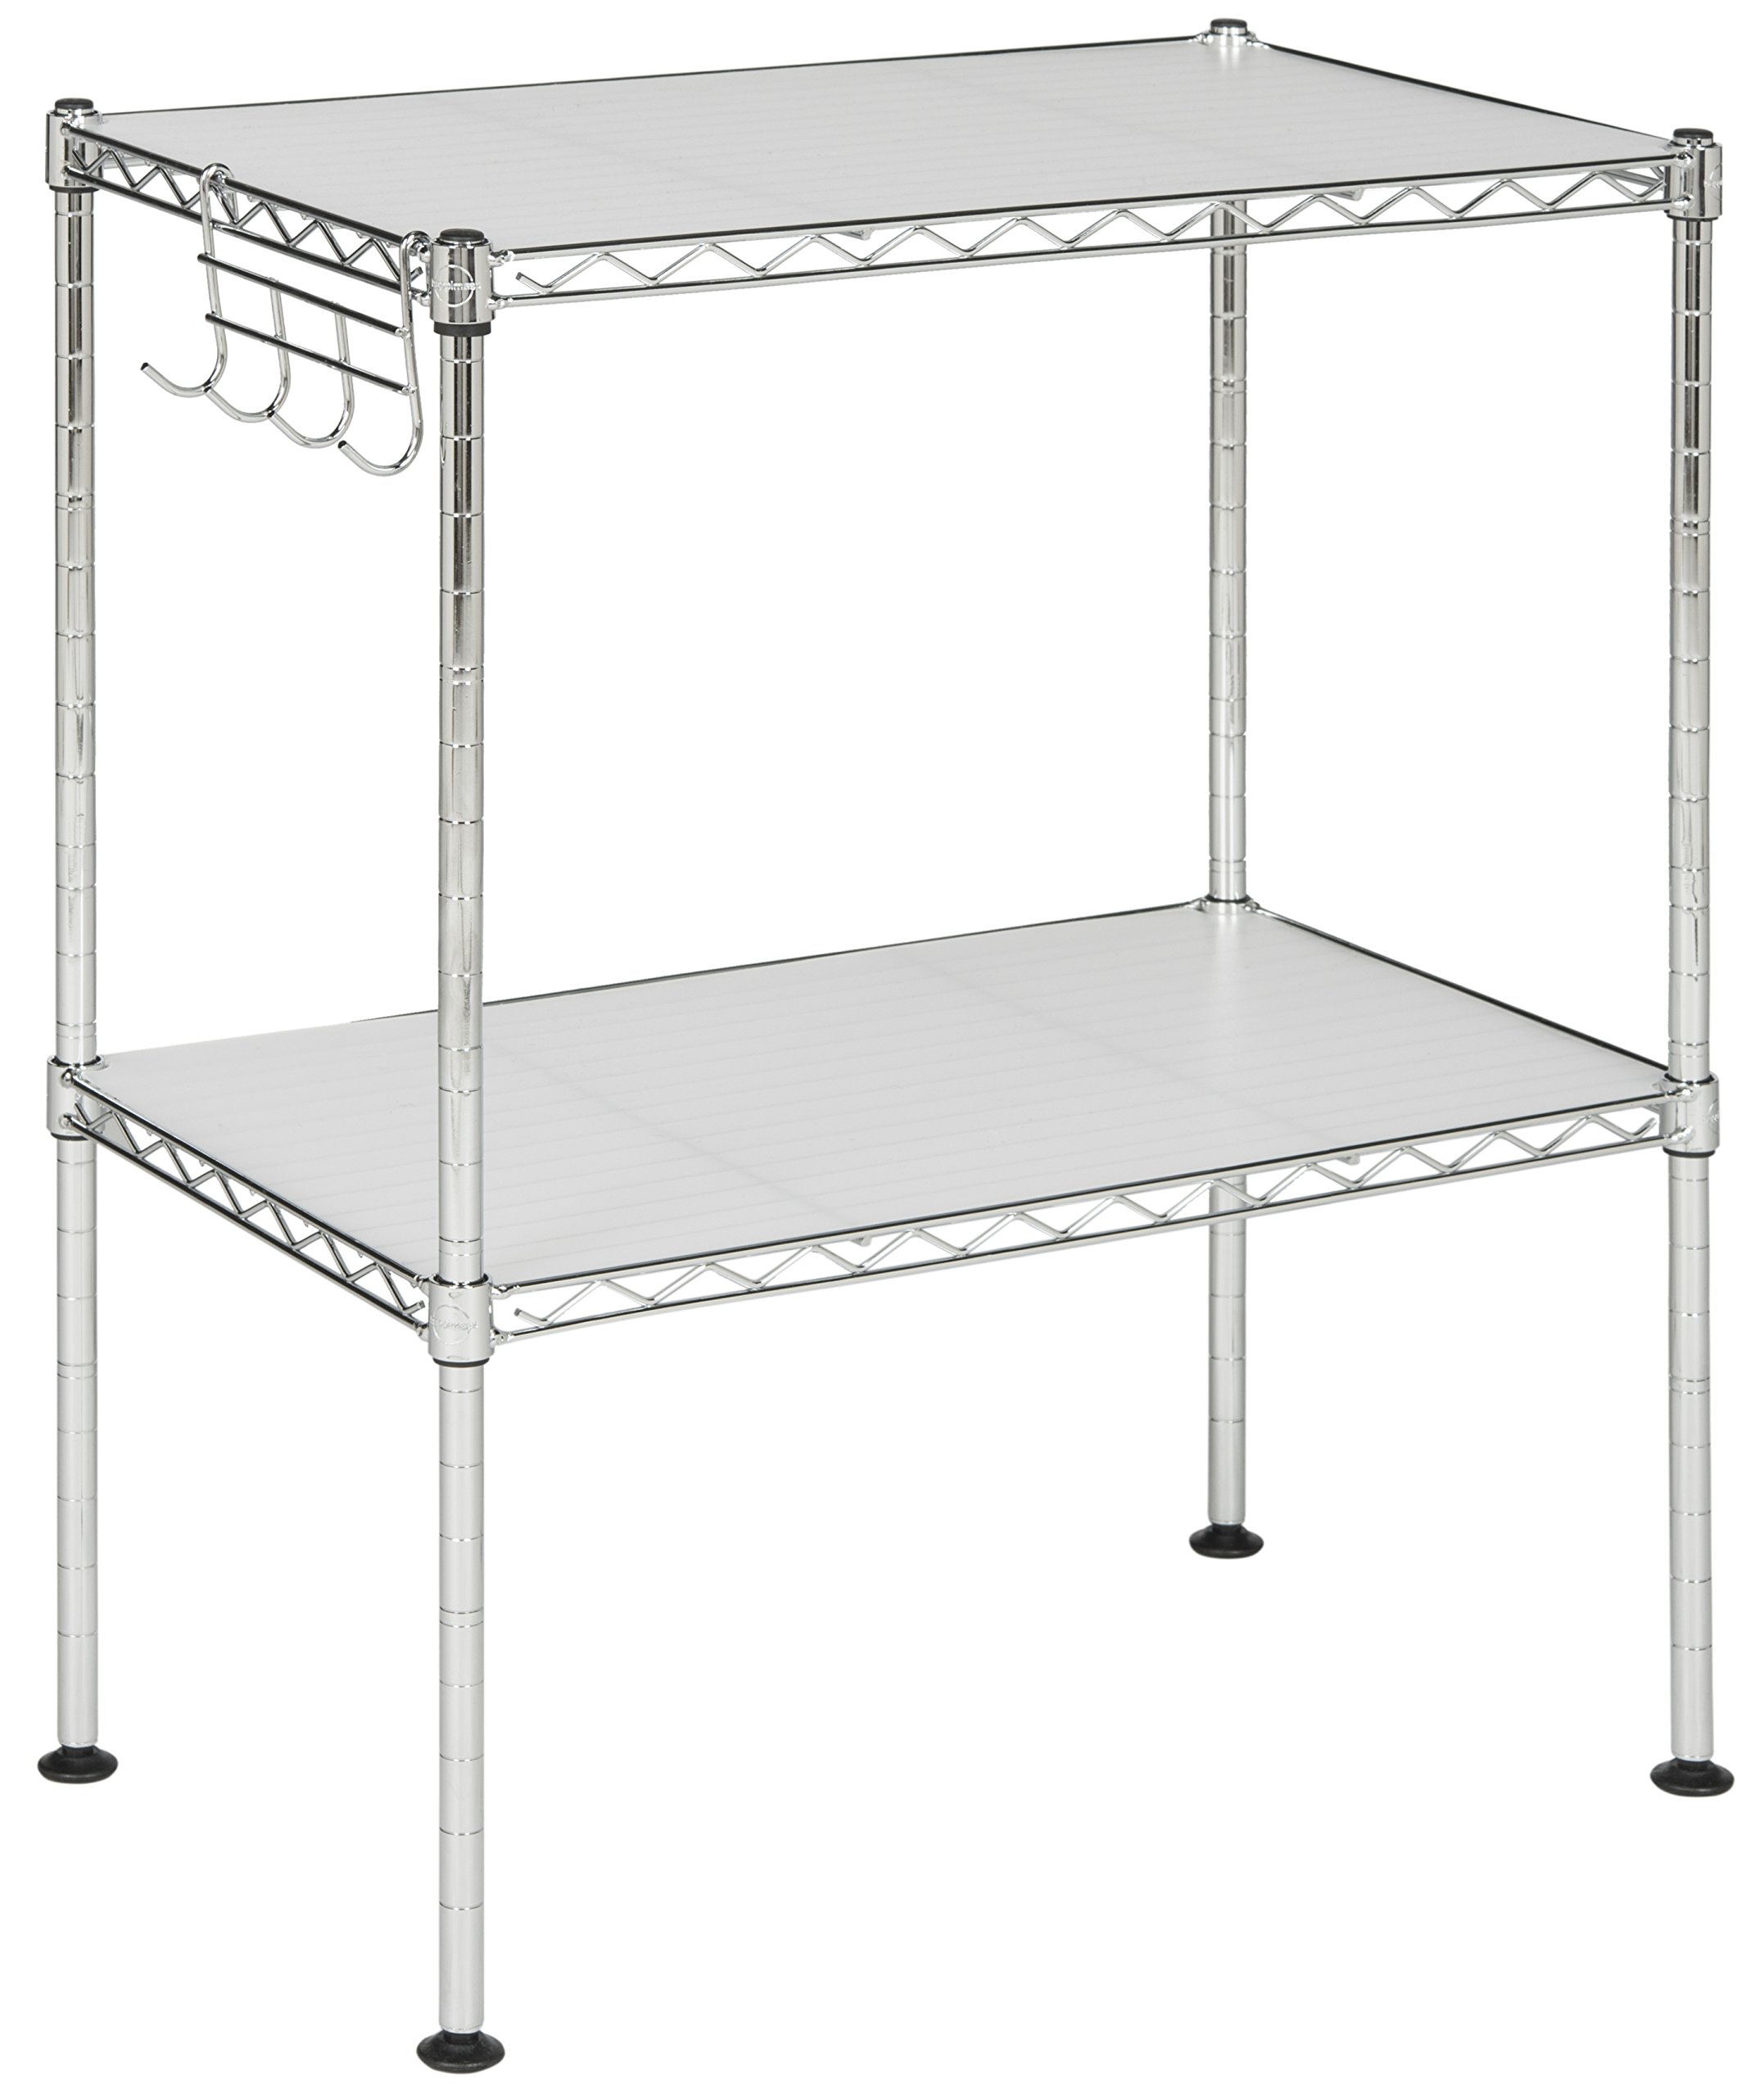 happimess HPM5013A Racking, 19.69 in. W x 11.81 in. D x 23.62 in. H, Silver by happimess (Image #3)